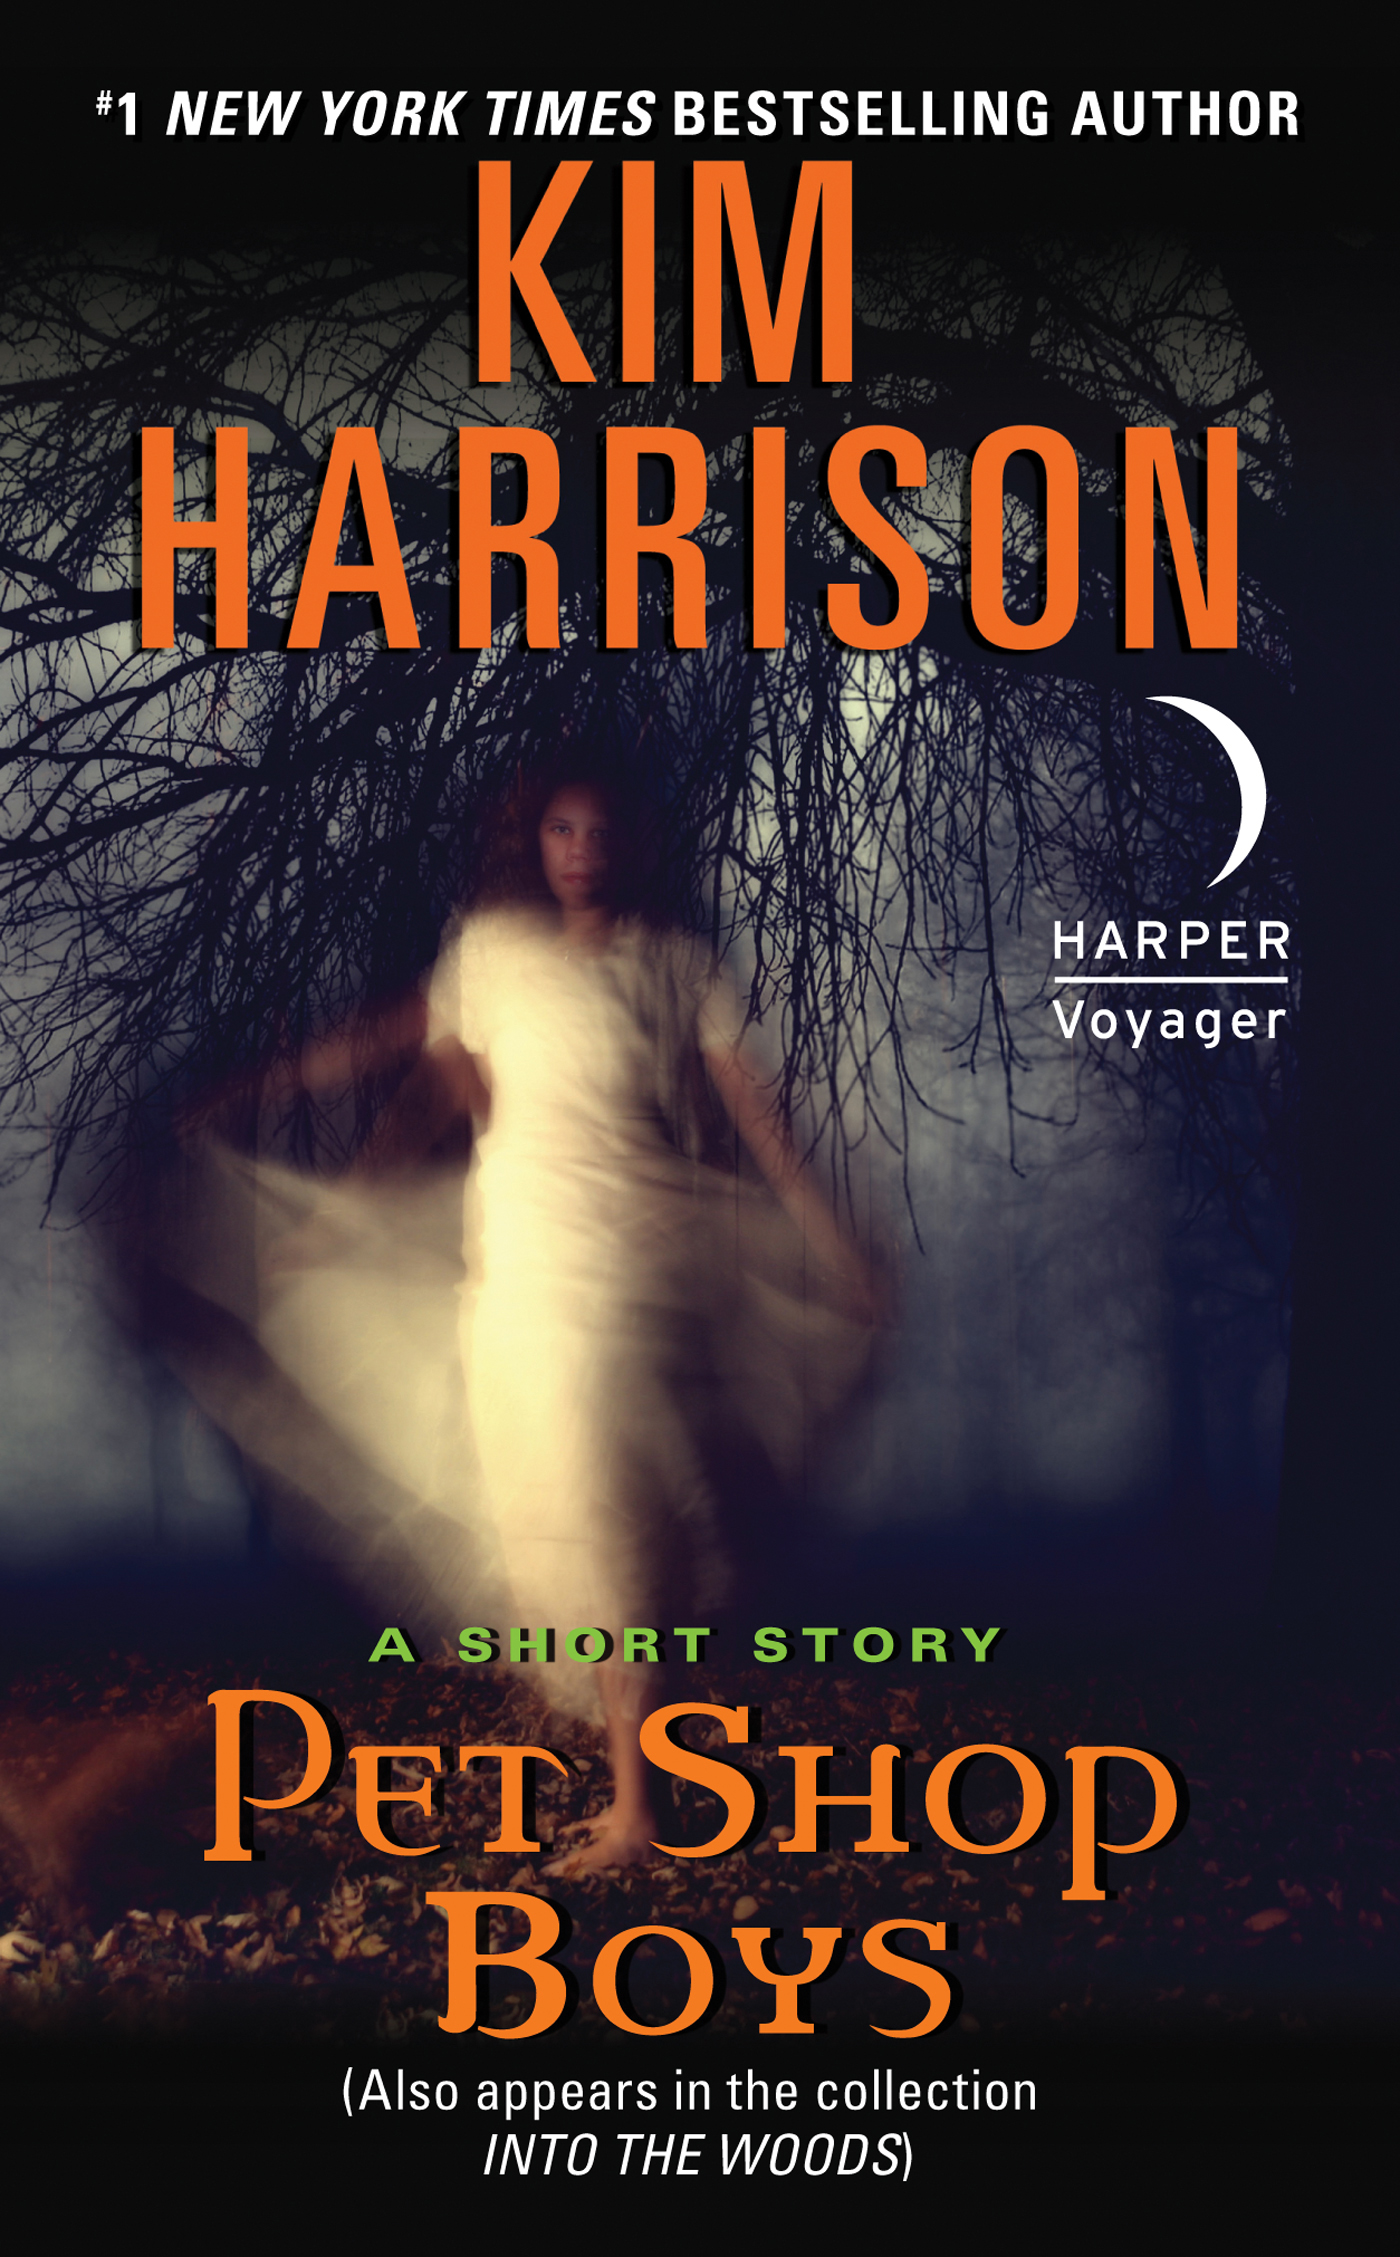 Pet Shop Boys: A Short Story By: Kim Harrison